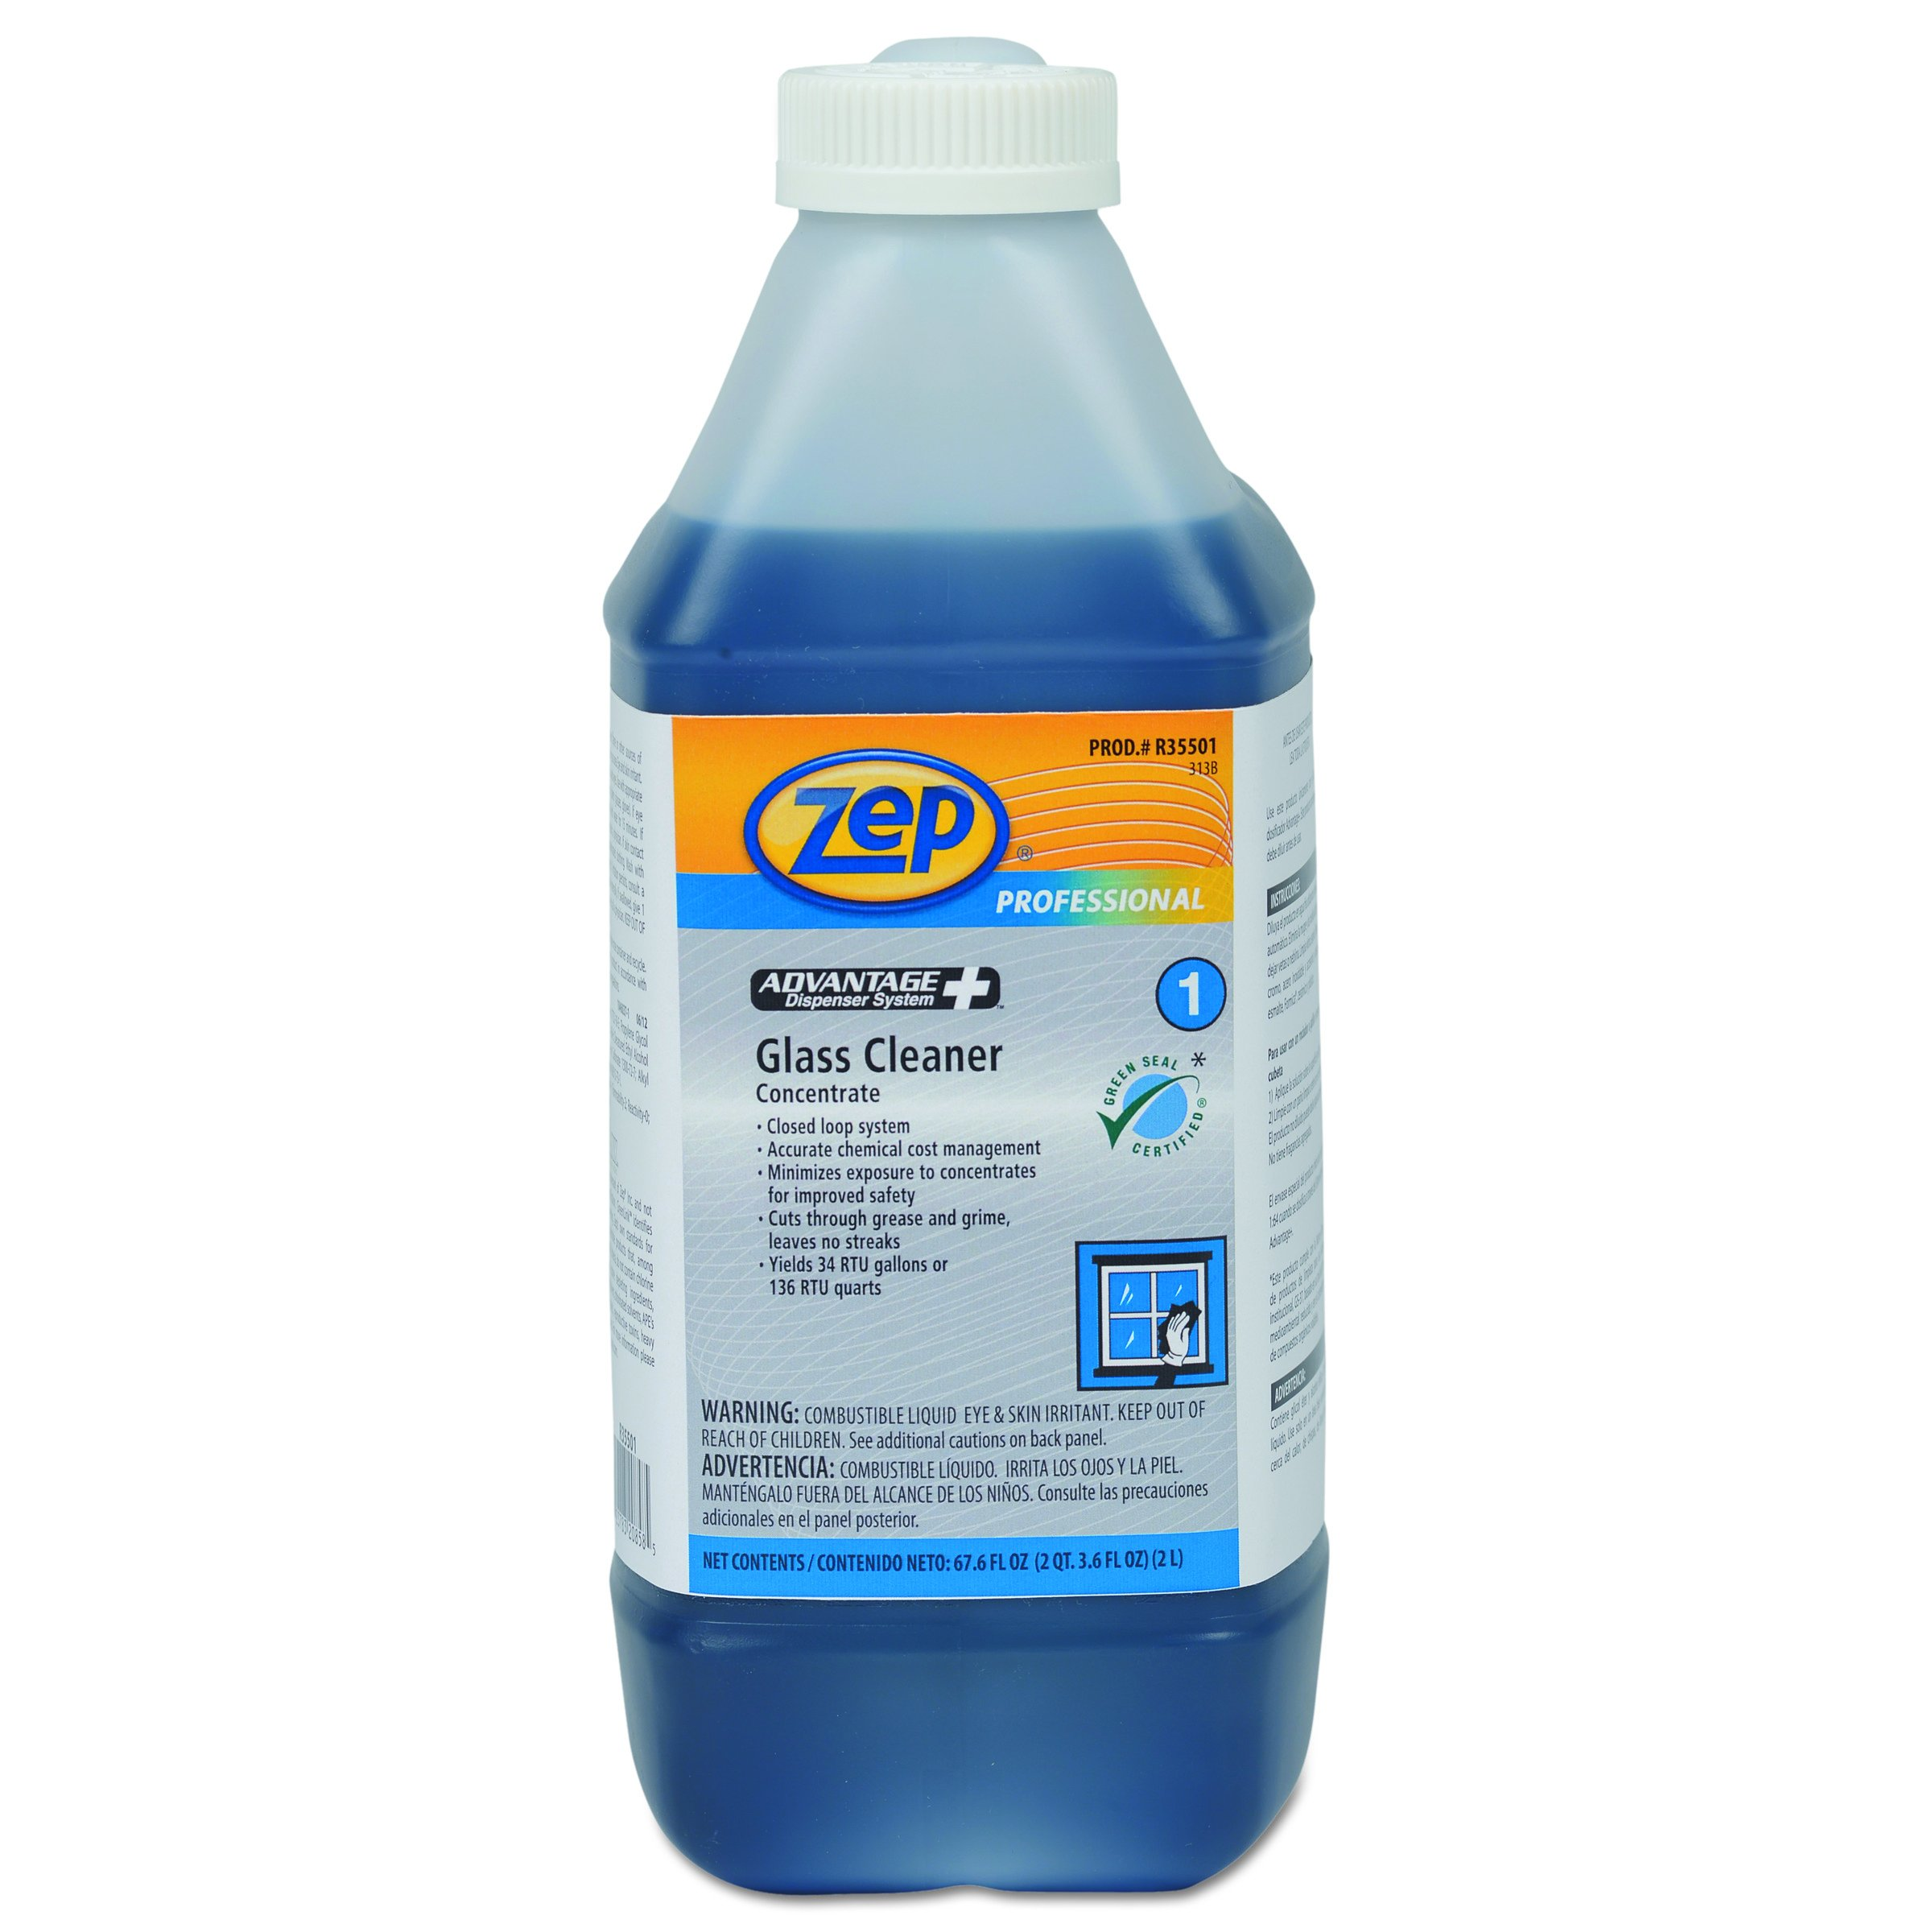 Zep Professional R35501CT Advantage+ Concentrated Glass Cleaner, 67.6 oz Bottle (Case of 4)